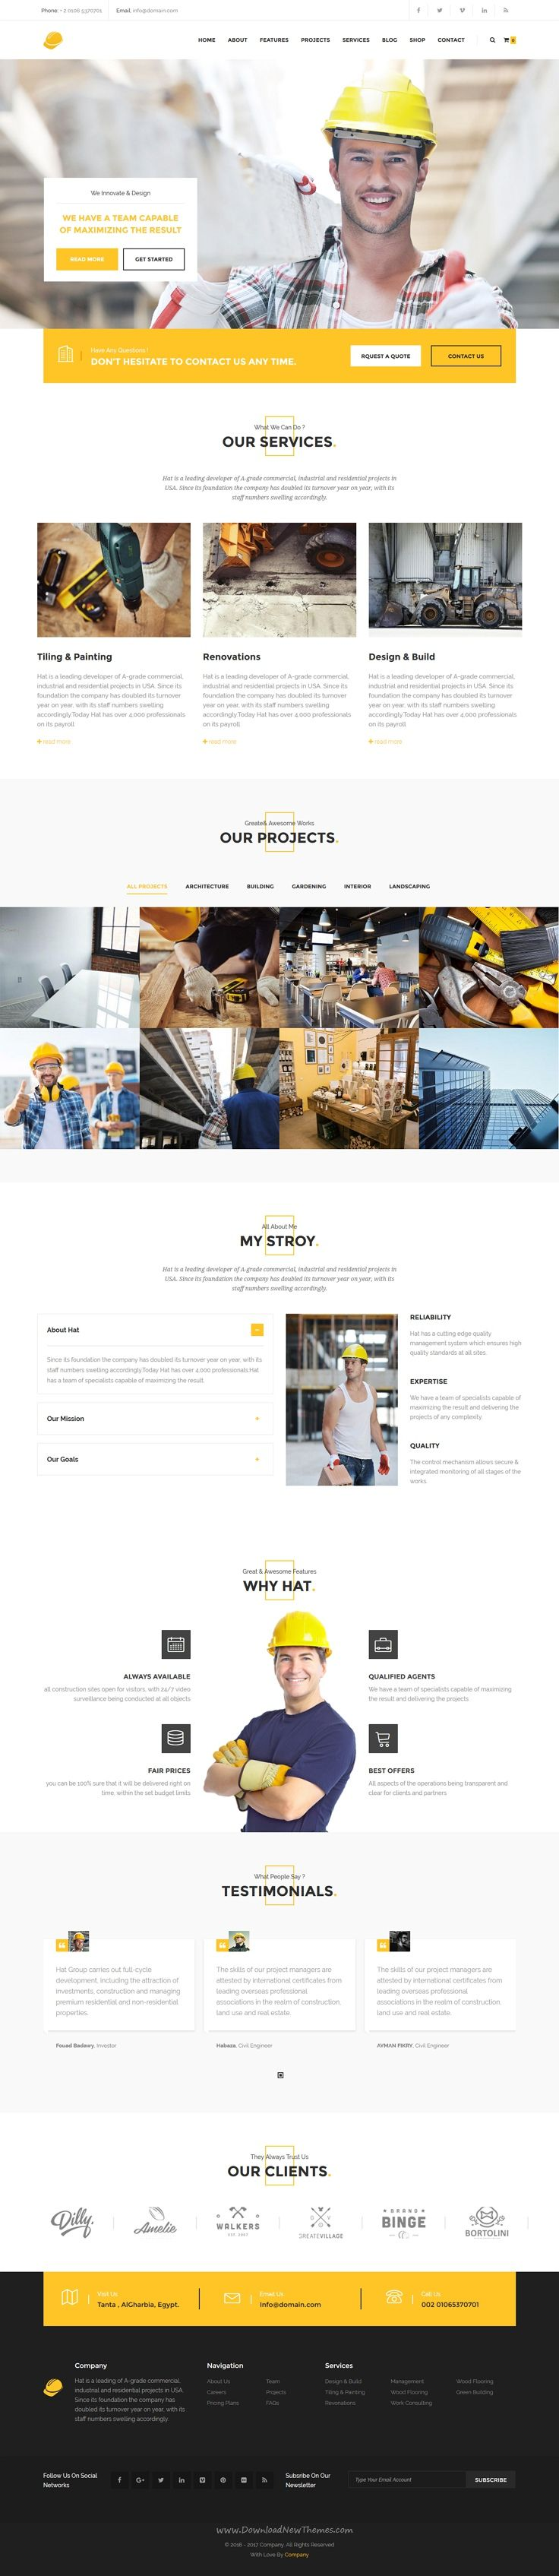 Yellow Hats is modern and unique premium 11 in 1 #Drupal Theme for #Construction, Building & Renovation #service website download now➯ https://themeforest.net/item/yellow-hats-construction-building-renovation-drupal-theme/16918875?ref=Datasata